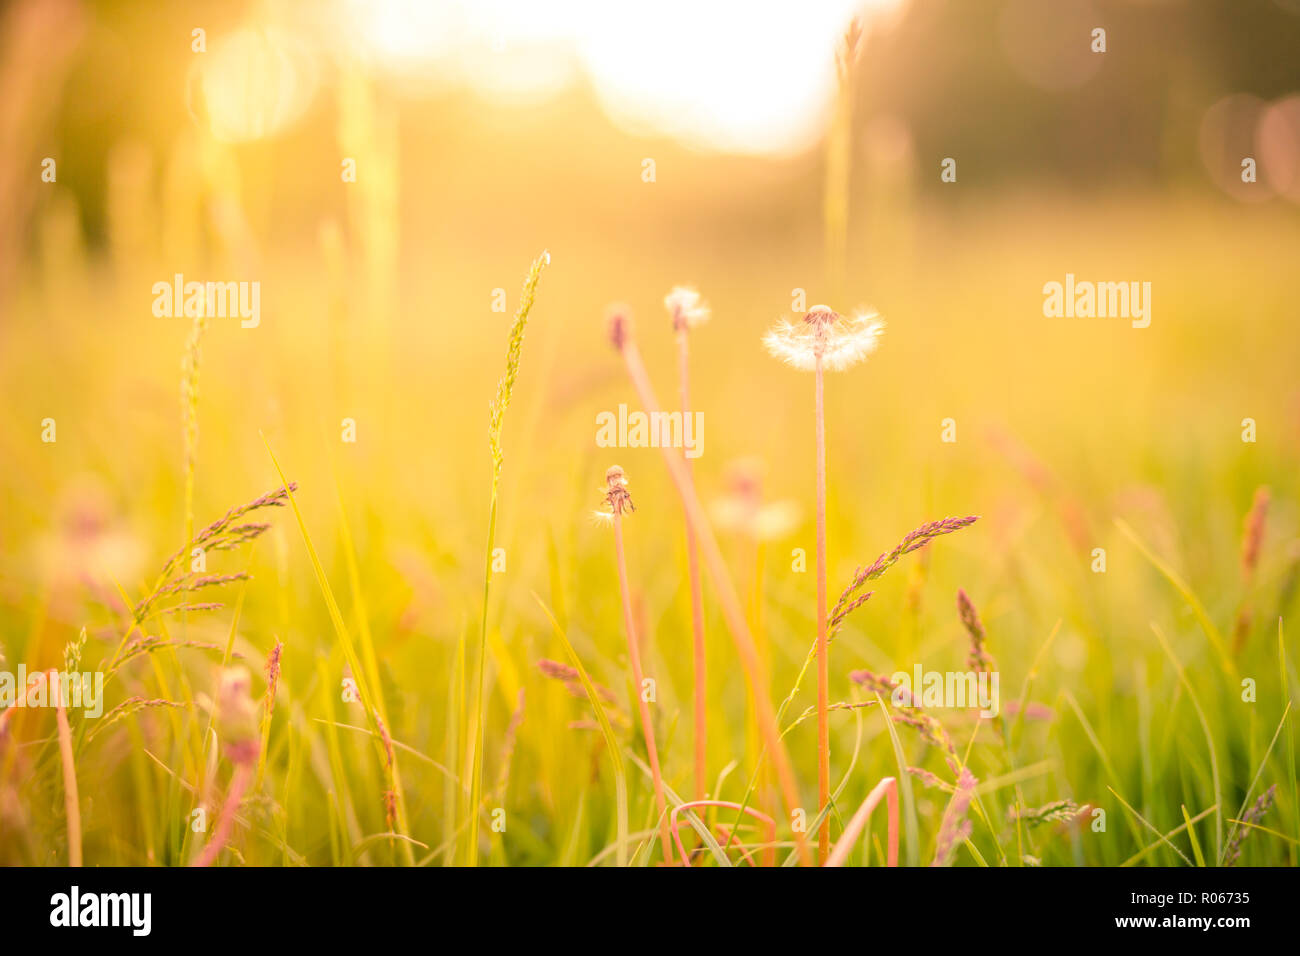 Vintage Romance Nature Artistic High Resolution Stock Photography And Images Alamy